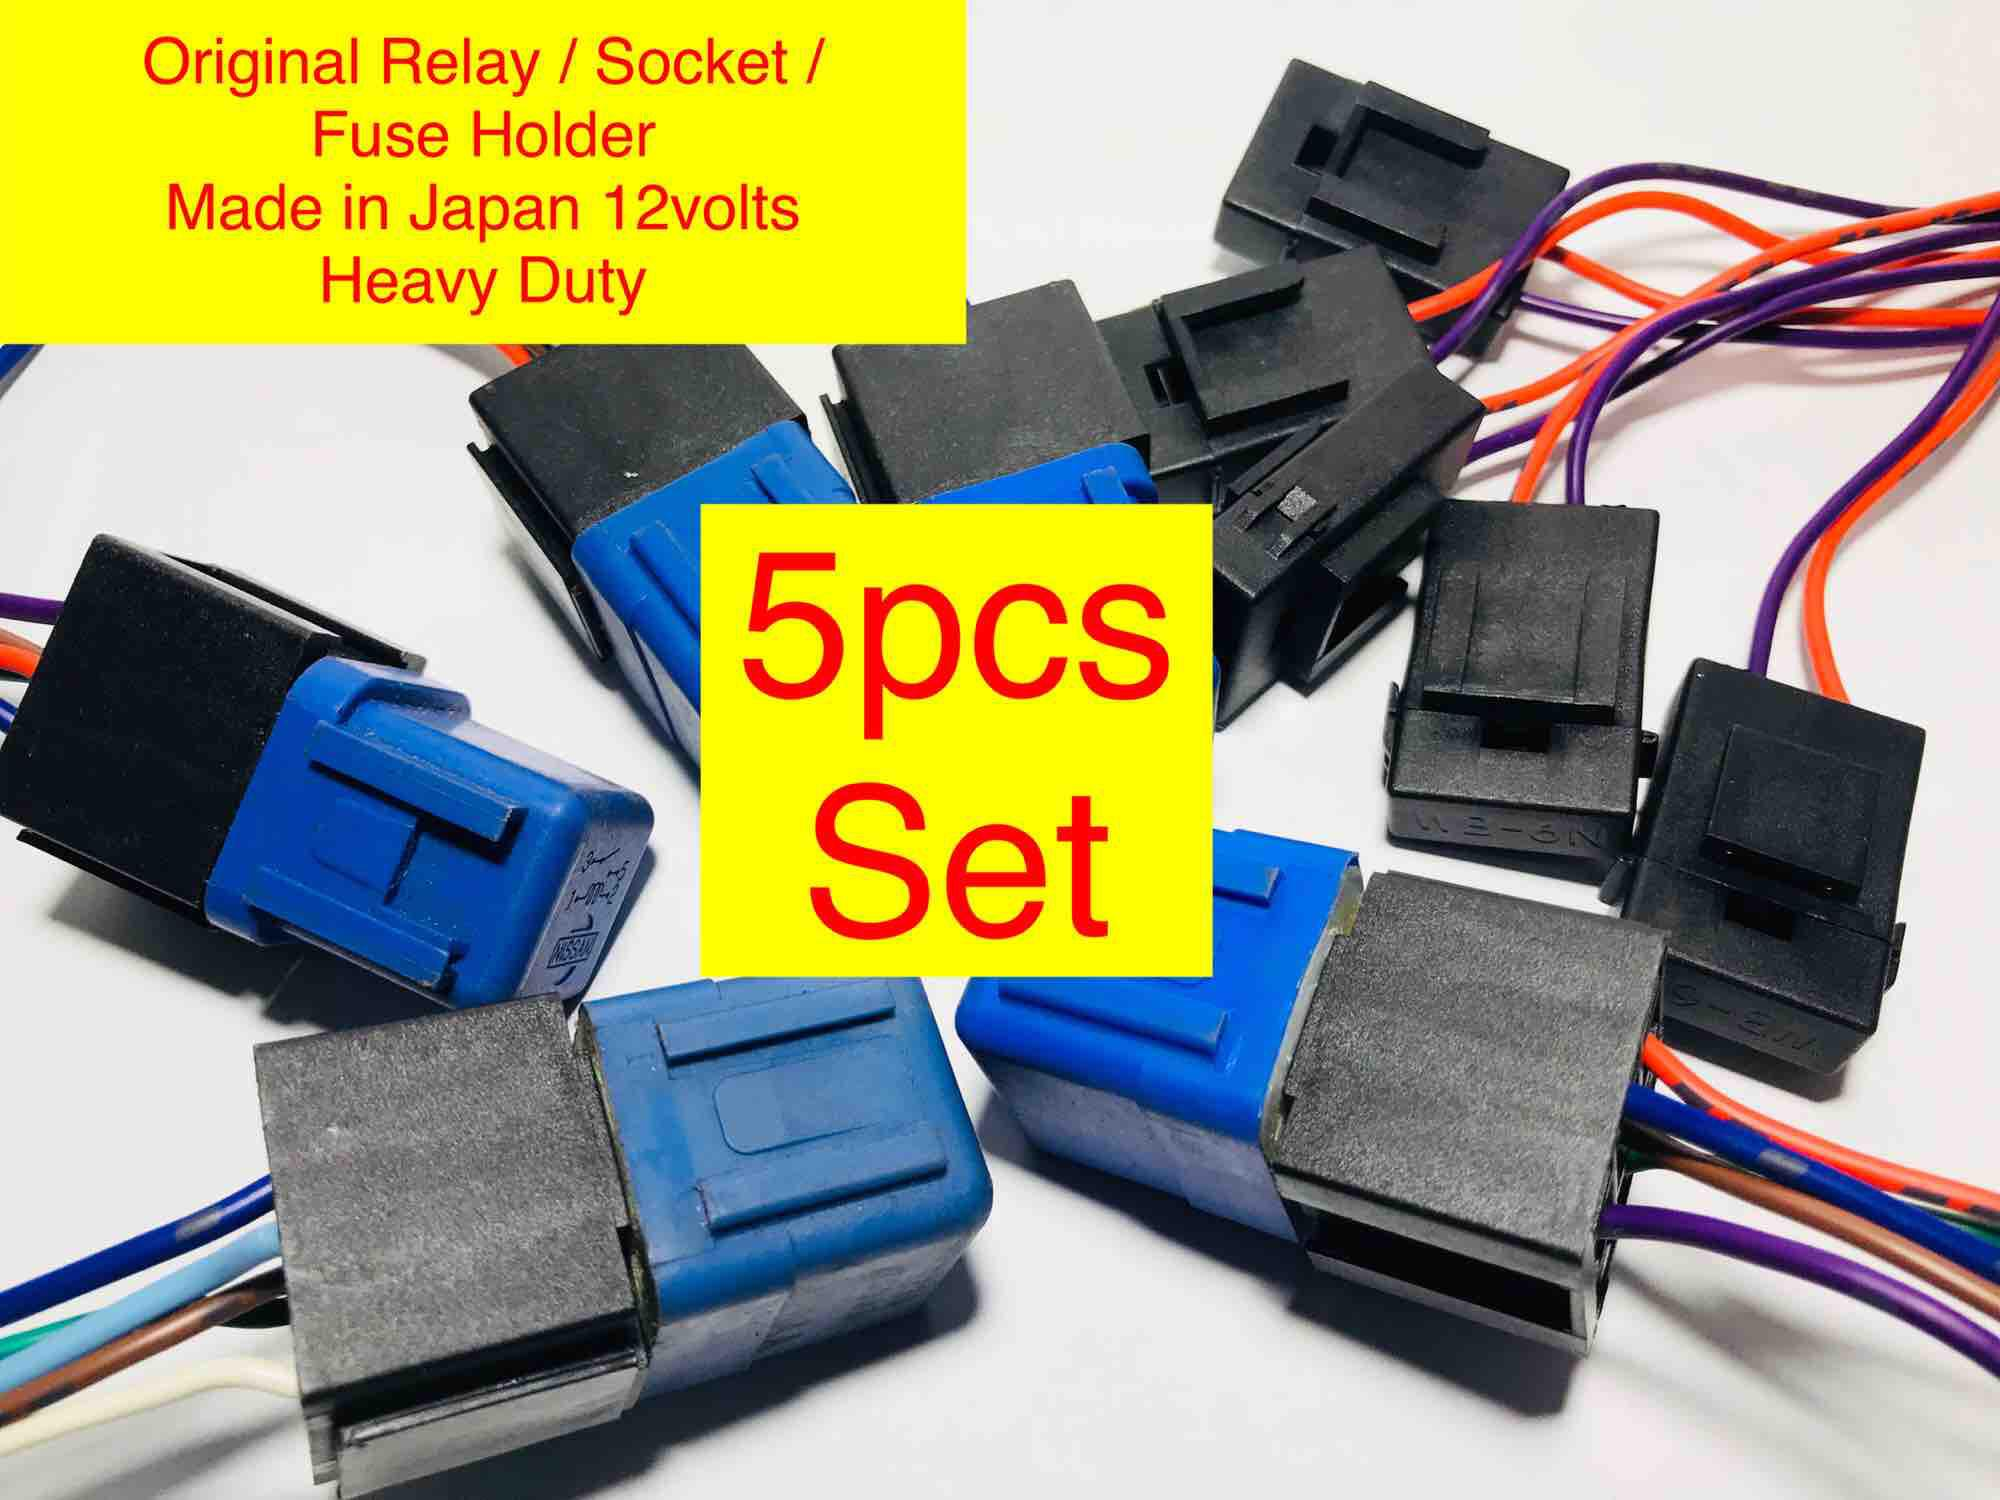 Car Relays For Sale Automotive Online Brands Prices Power Changeover Relay Auto 5pc Set 12v Universal Original With Socket Fuse Holder Aircon Like